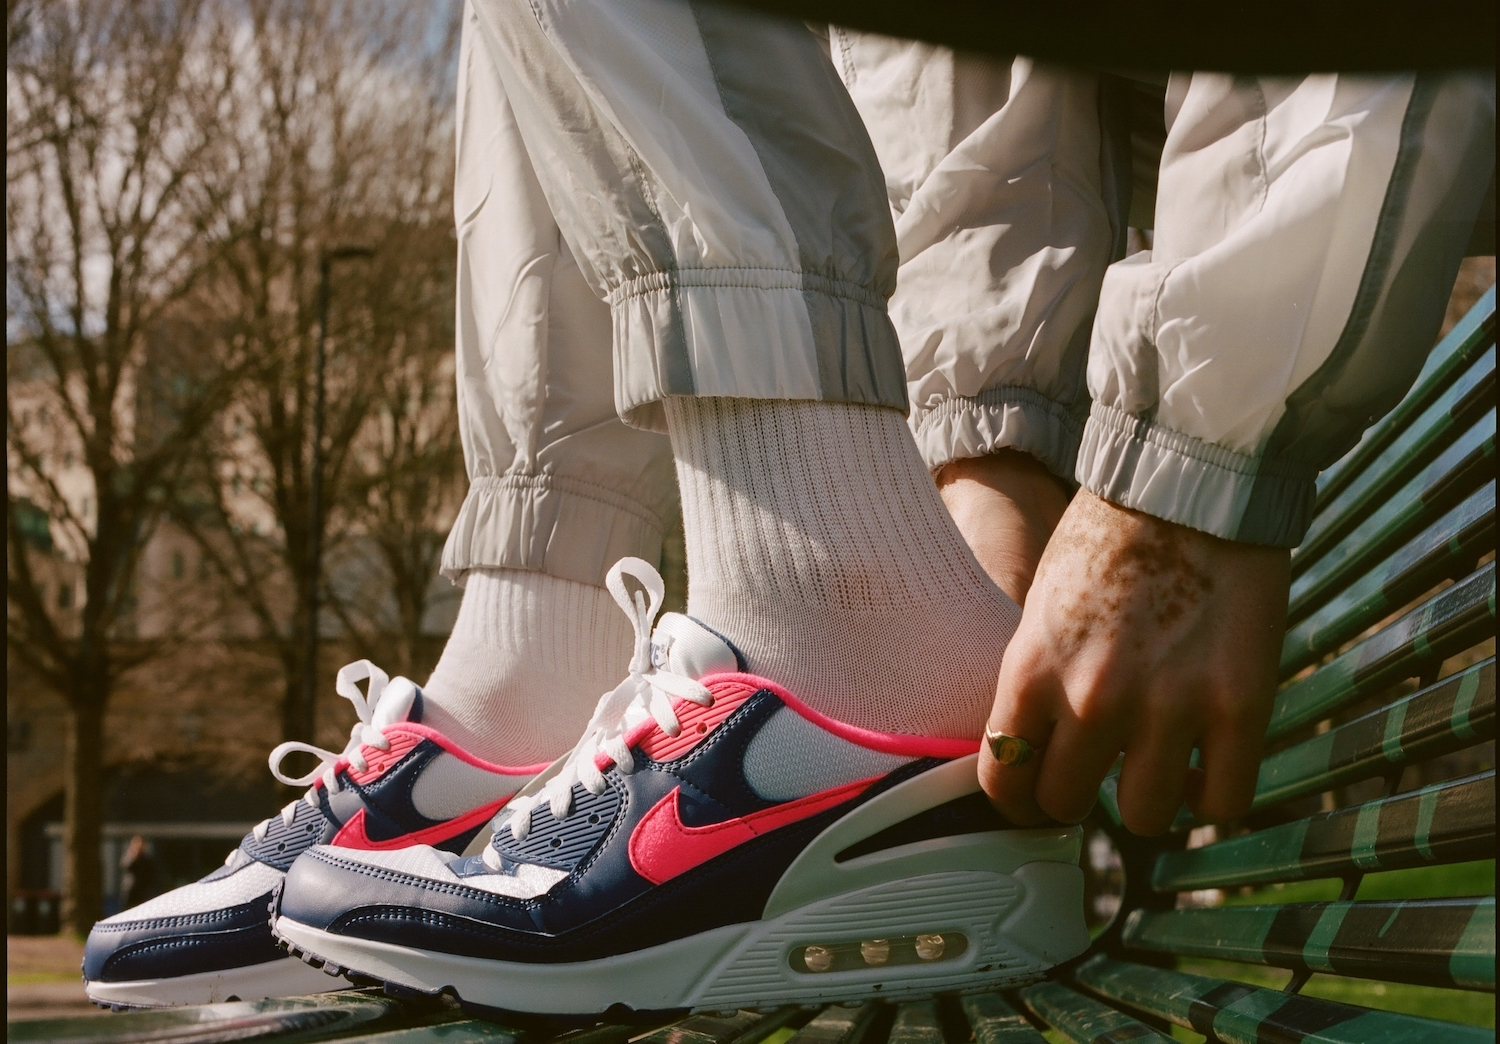 PAUSE Editorial: Nike Air Max 90 FlyEase